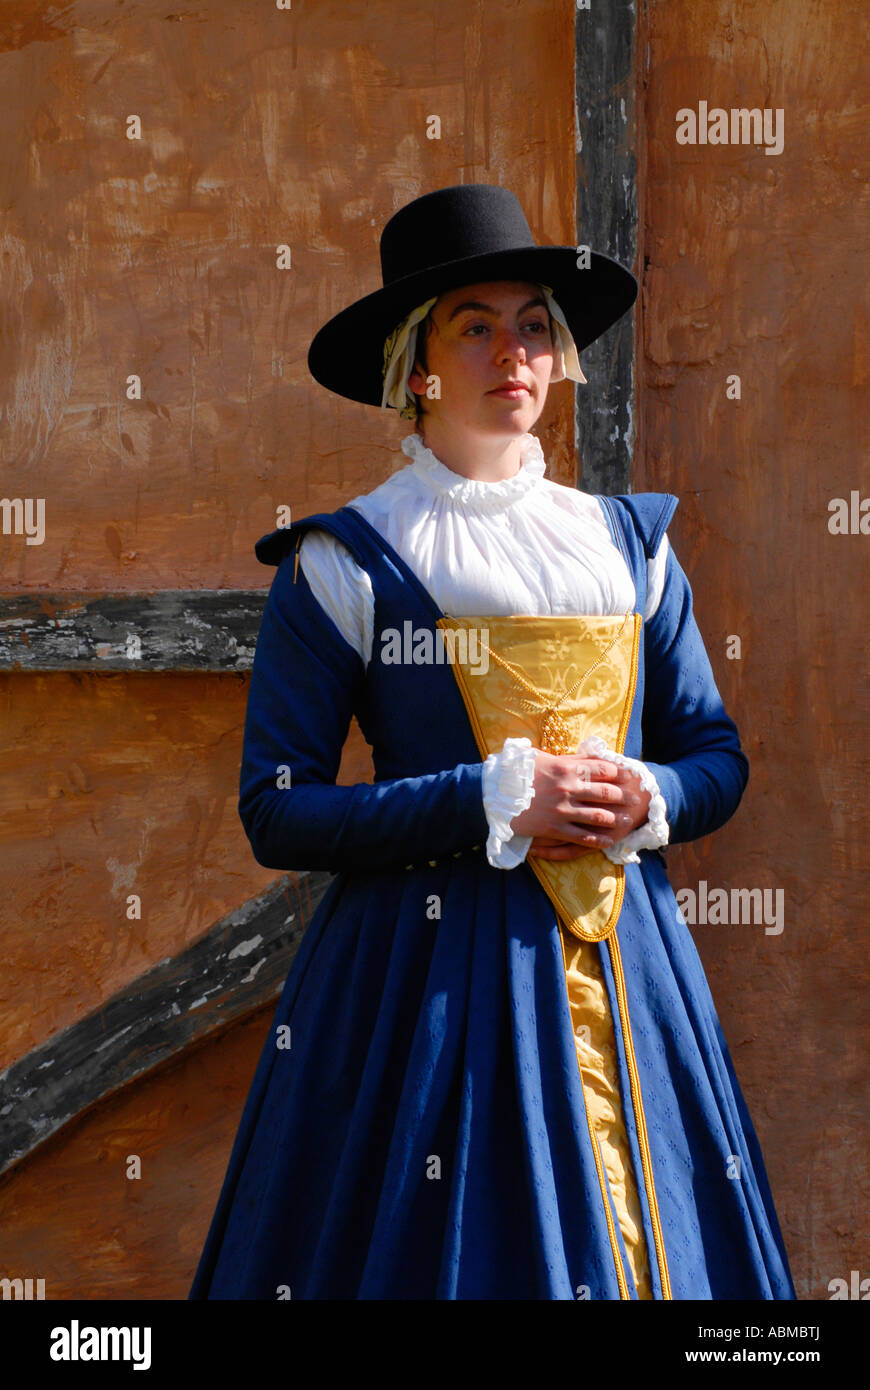 Re enactor dressed as a middle class Elizabethan - Stock Image